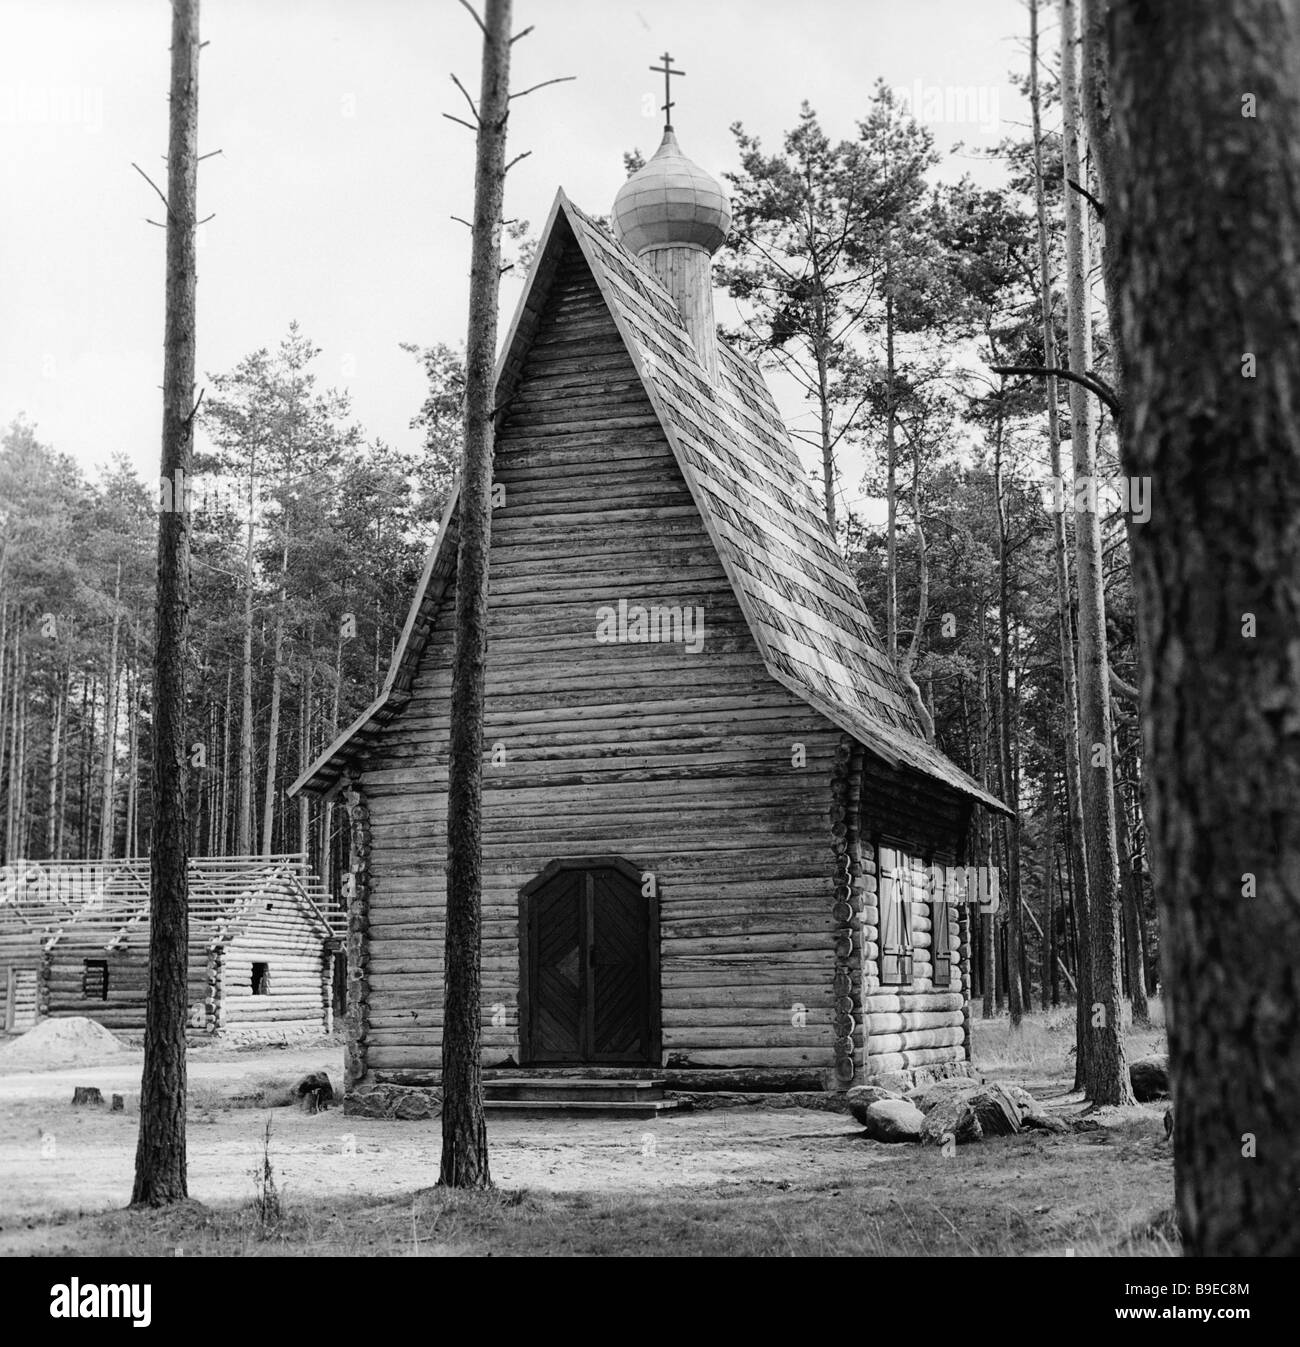 Chapel 19th century an exhibit of the outdoor ethnographical museum - Stock Image